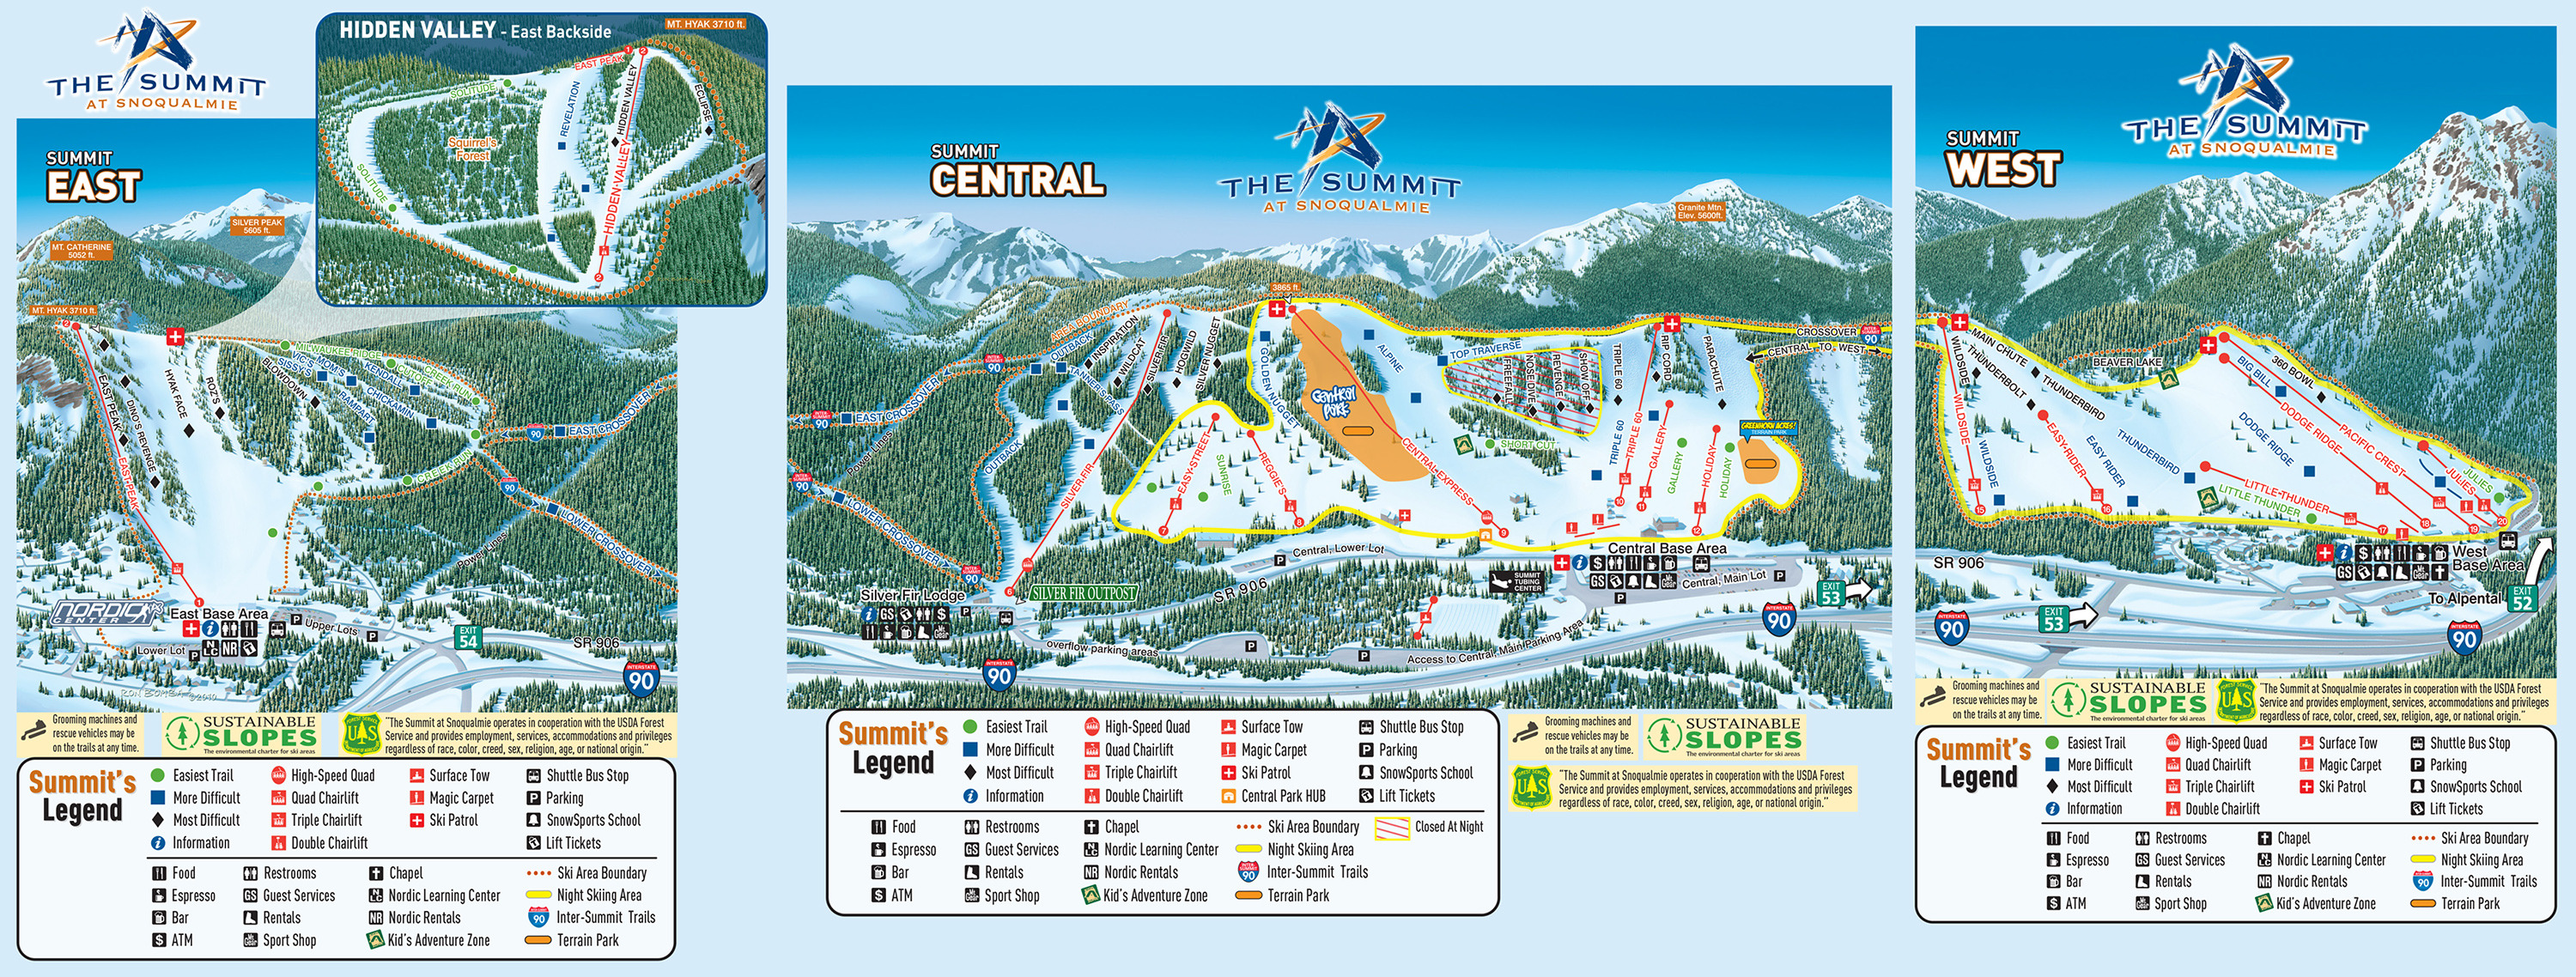 The Summit At Snoqualmie Trail Map - Us ski resorts map